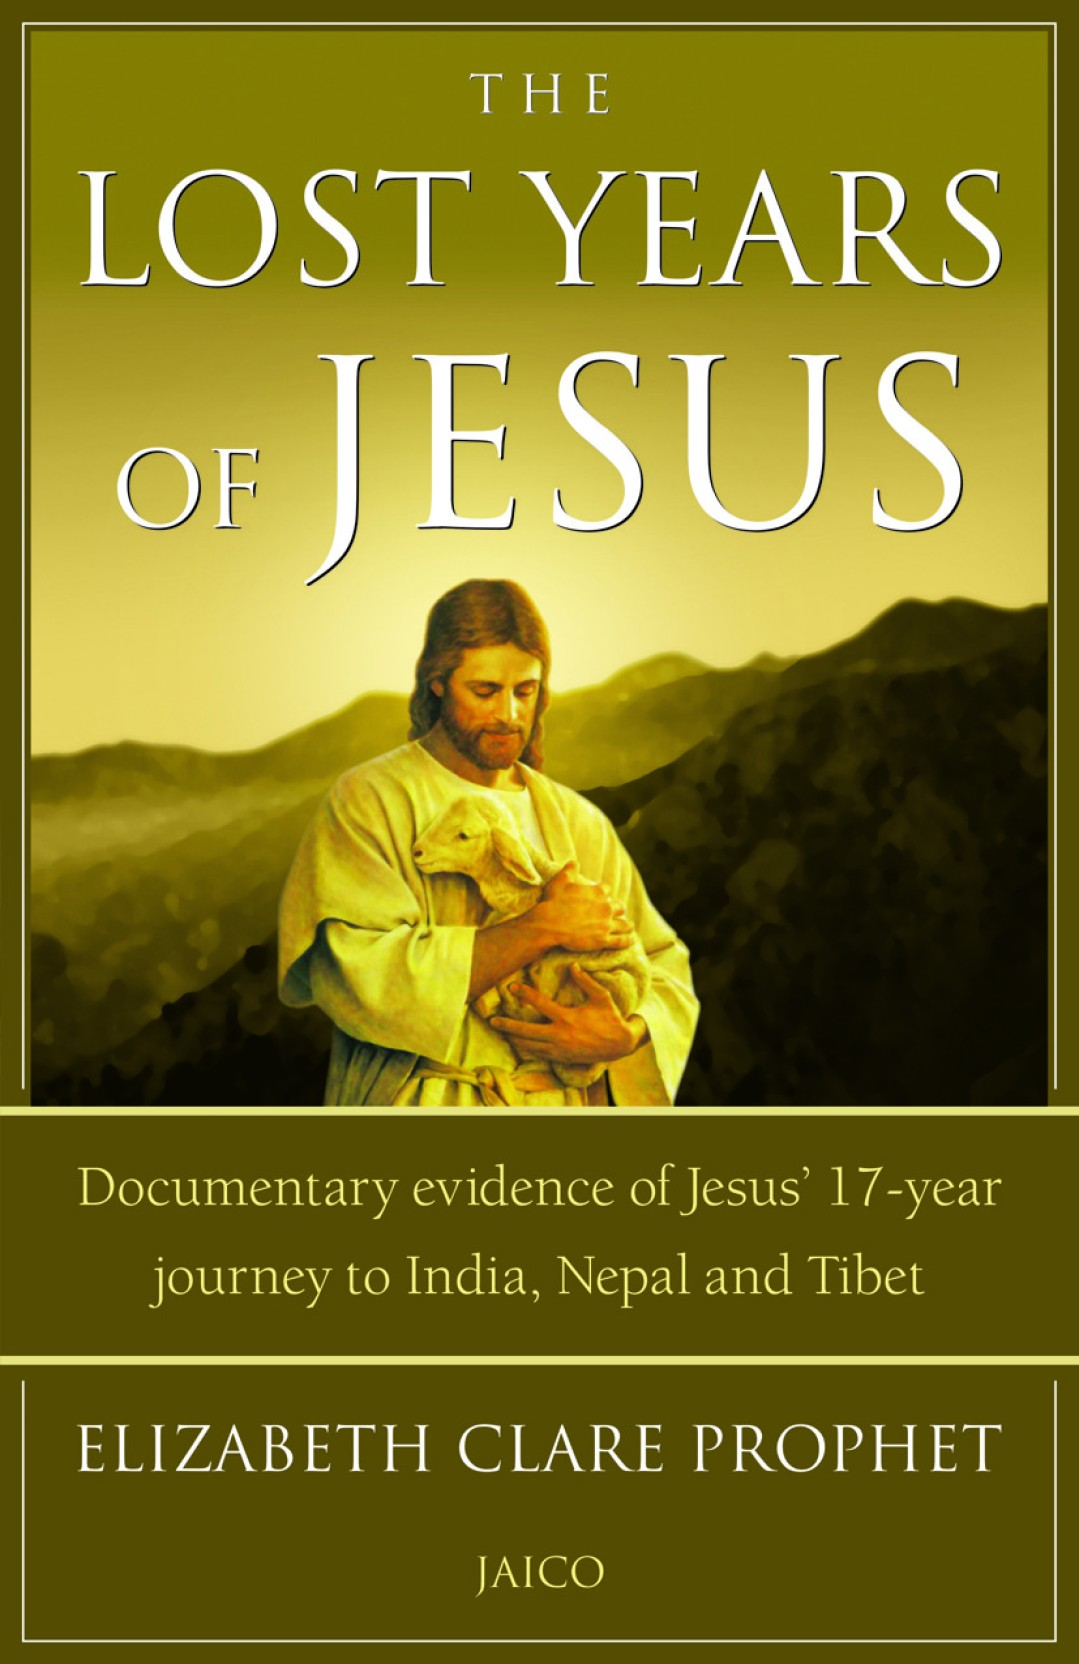 The Lost years of Jesus. ADD TO CART